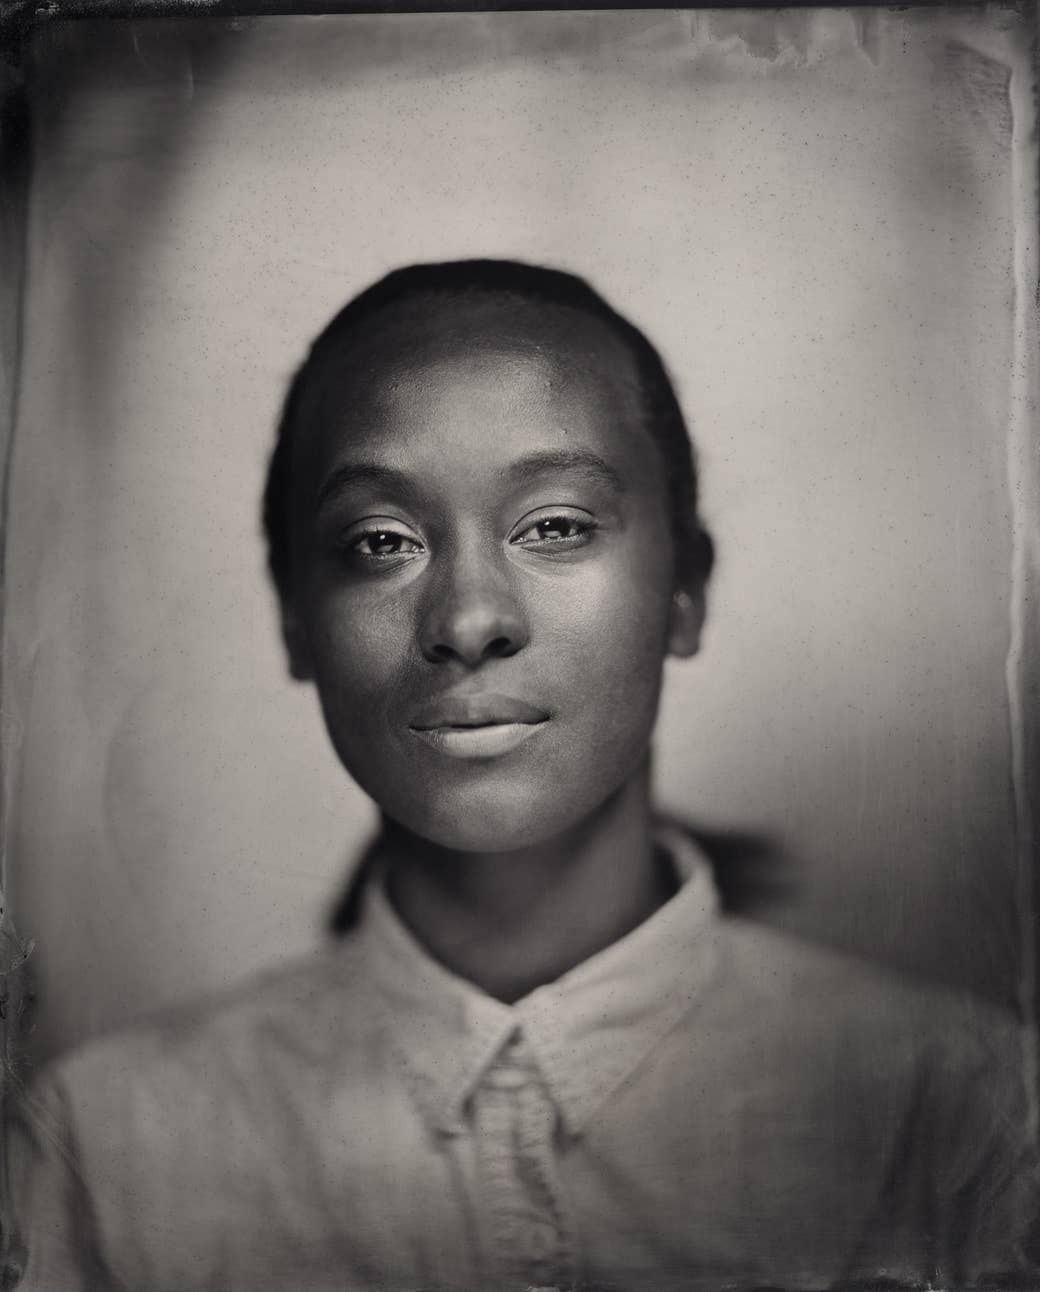 A young girl staring into the camera in a tintype image